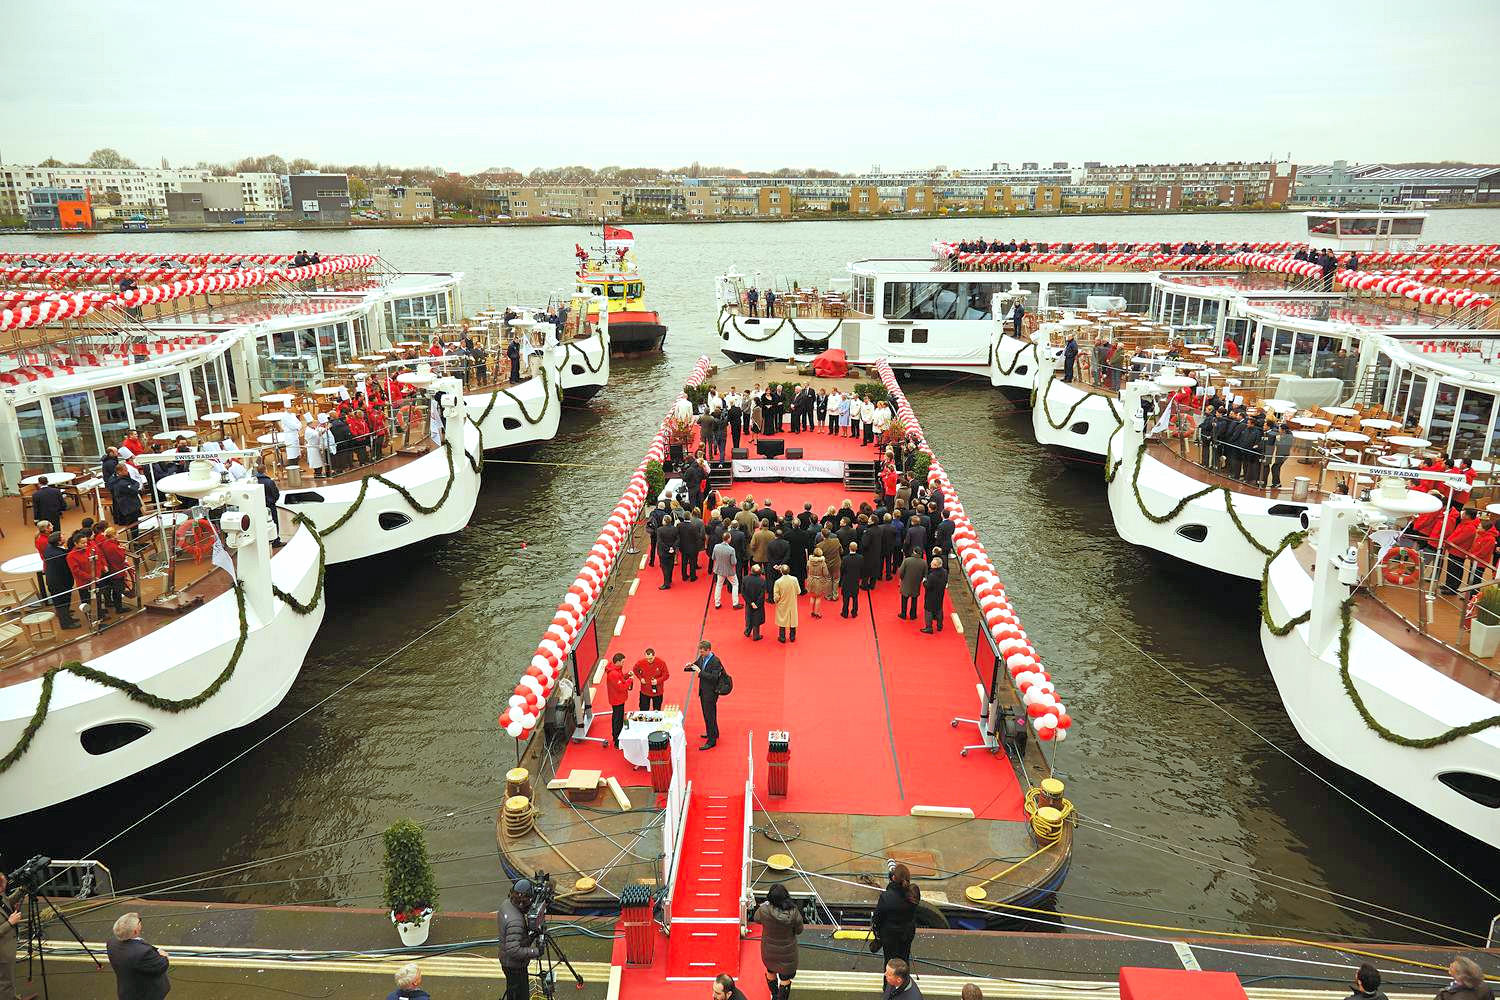 Viking River Cruises shattered Guiness Book of World Records in 2013 and 2014 with the introduction of 10 and 16 new Viking Longships respectively. Photo: Property of Viking. Unauthorized use is prohibited.